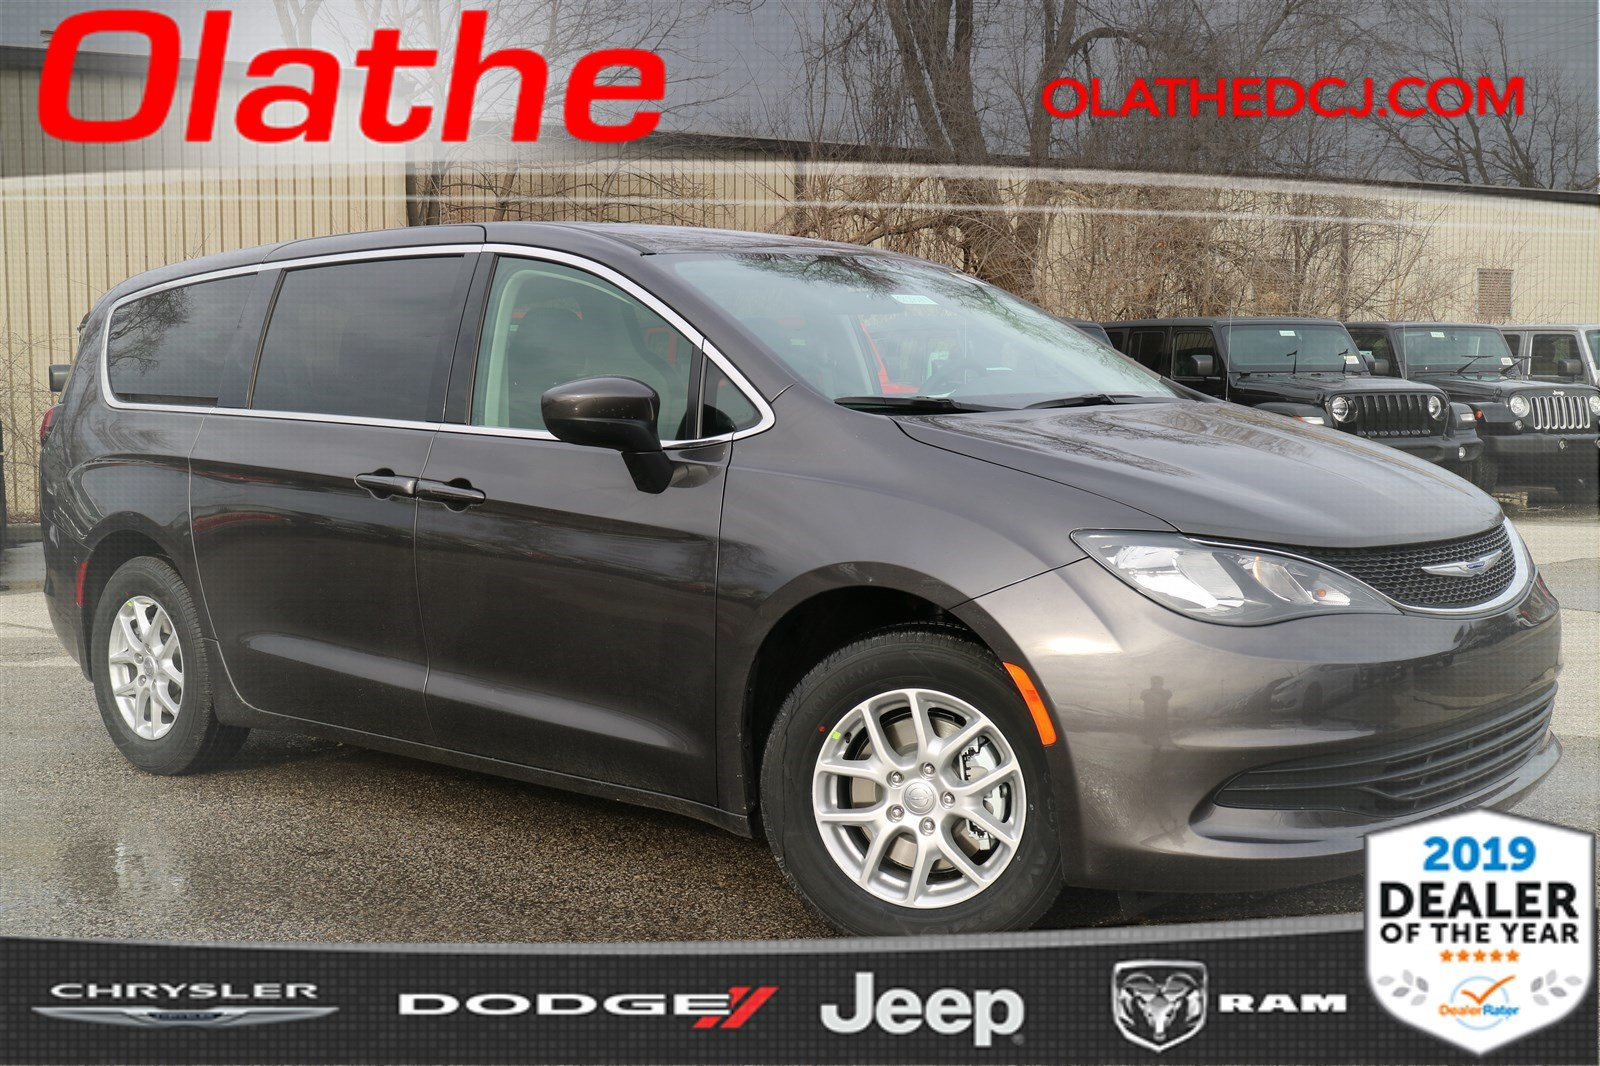 New 2019 Chrysler Pacifica Lx Passenger Van In Olathe Kr628114